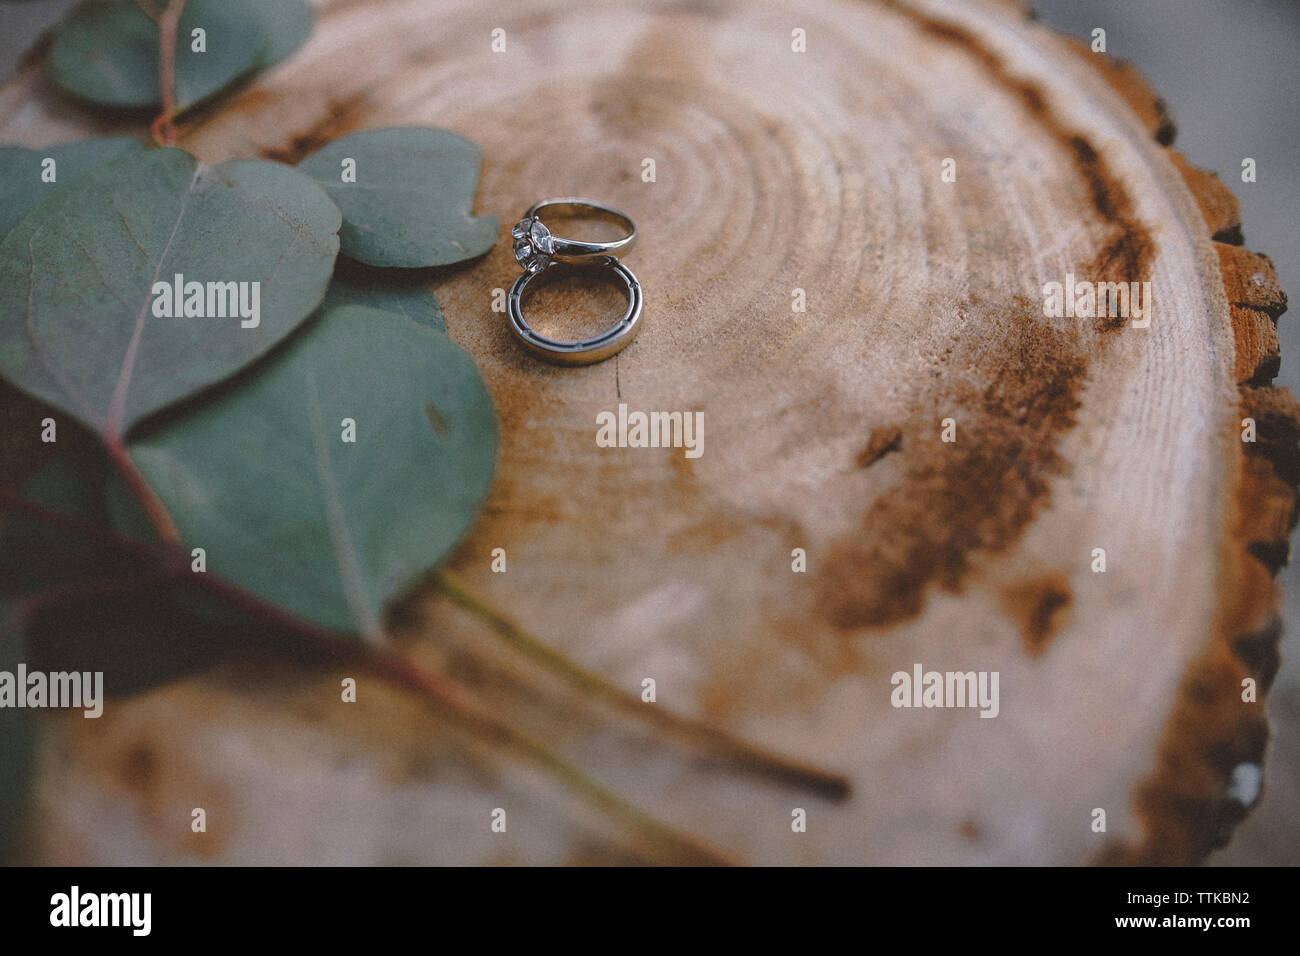 High angle view of wedding rings with leaves on tree stump Stock Photo